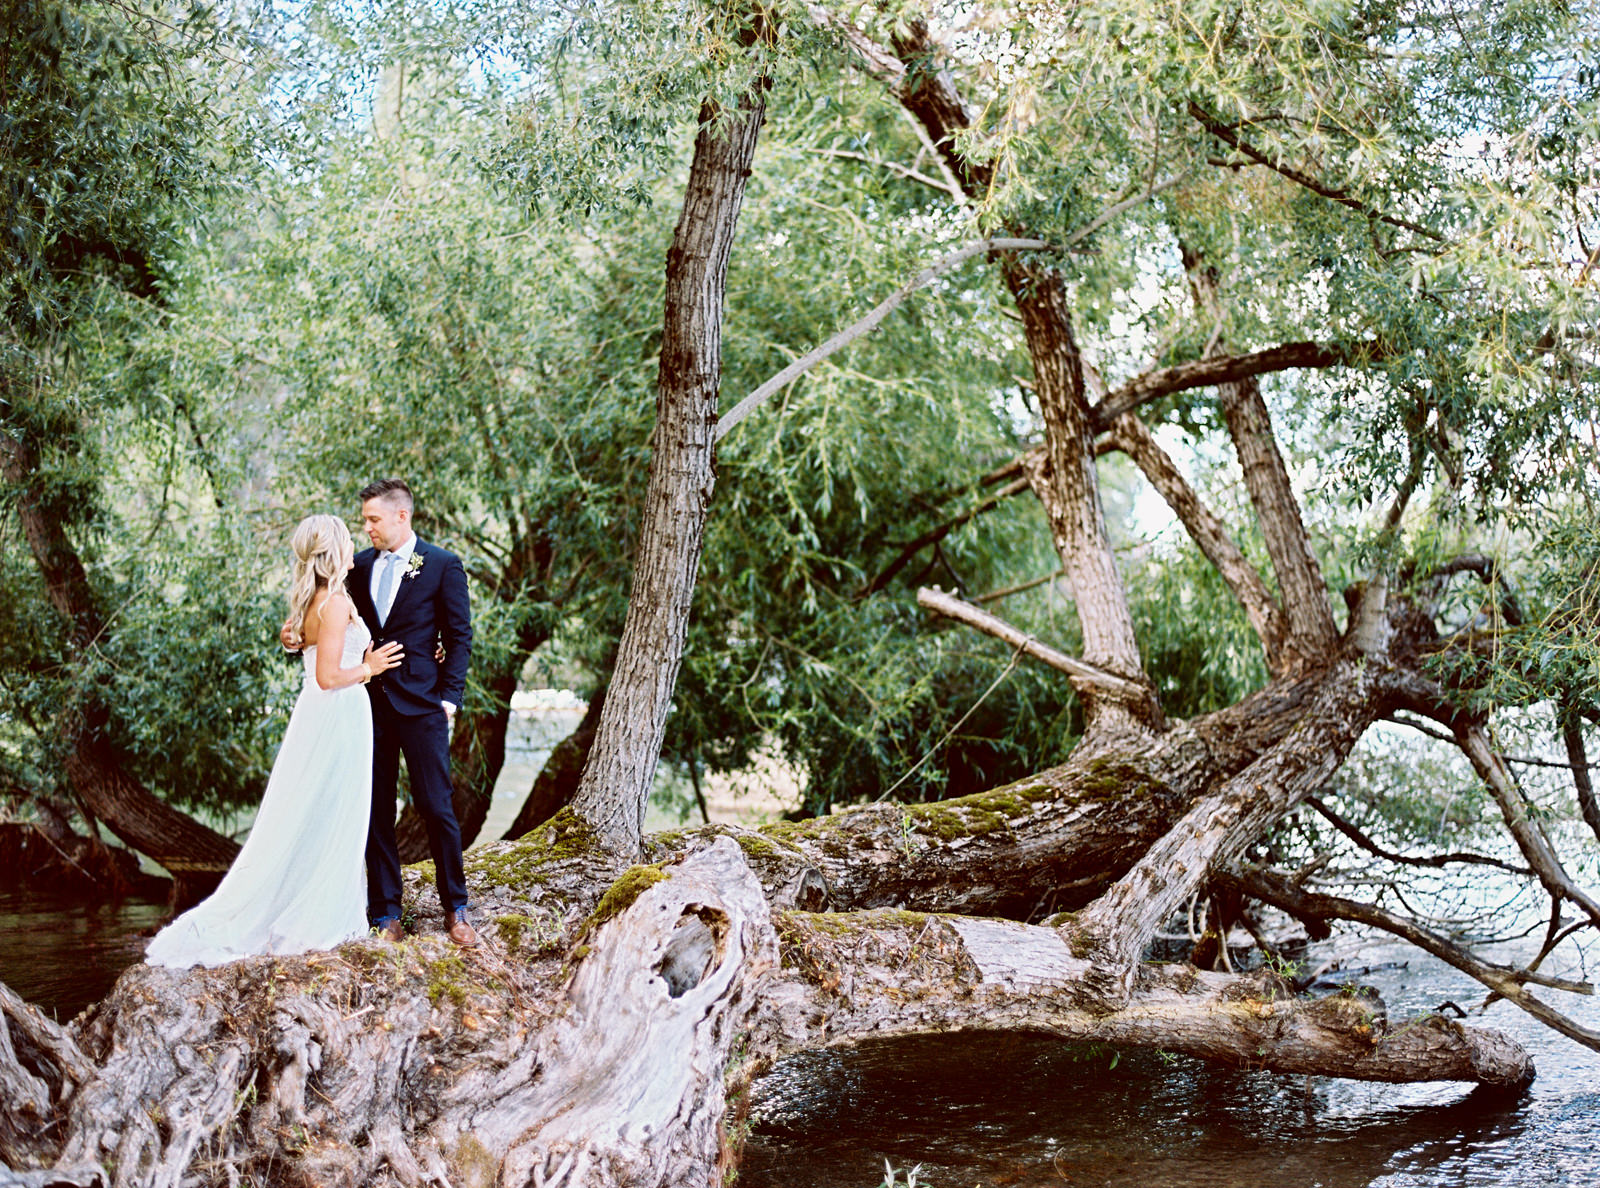 076-film-portrait-of-bride-and-groom-in-hayden-lake-idaho-by-ryan-flynn-photography.jpg